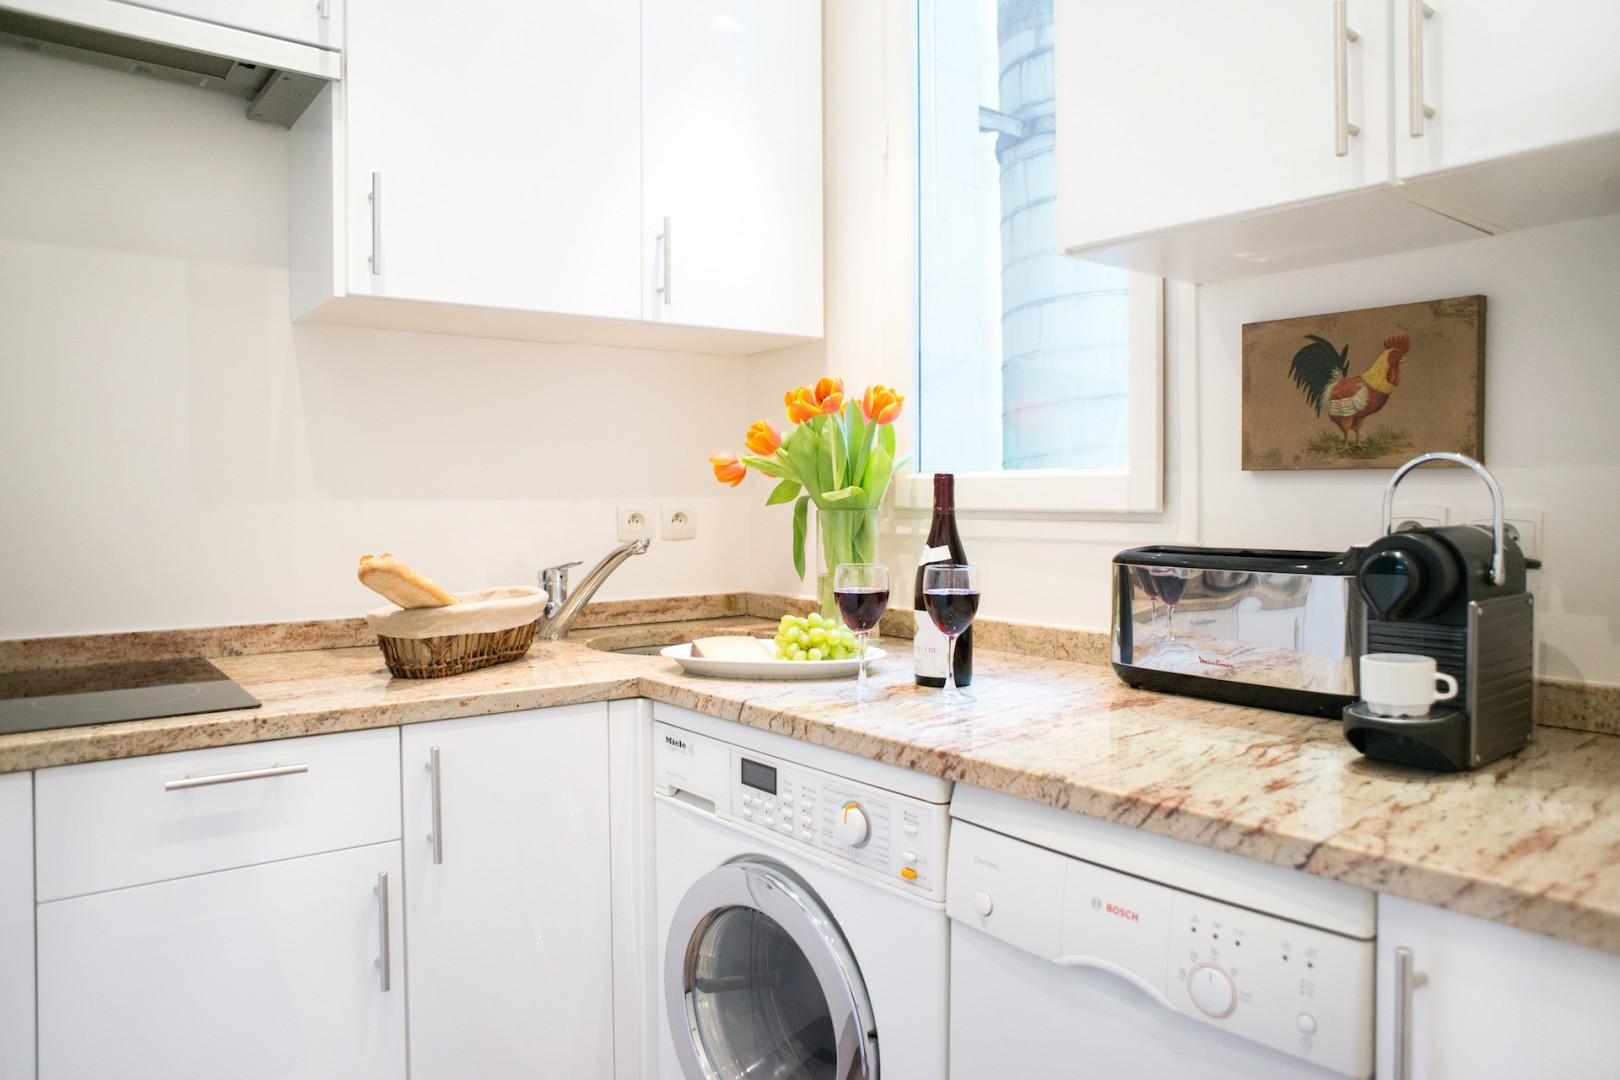 The fully equipped kitchen with modern appliances has everything you need.